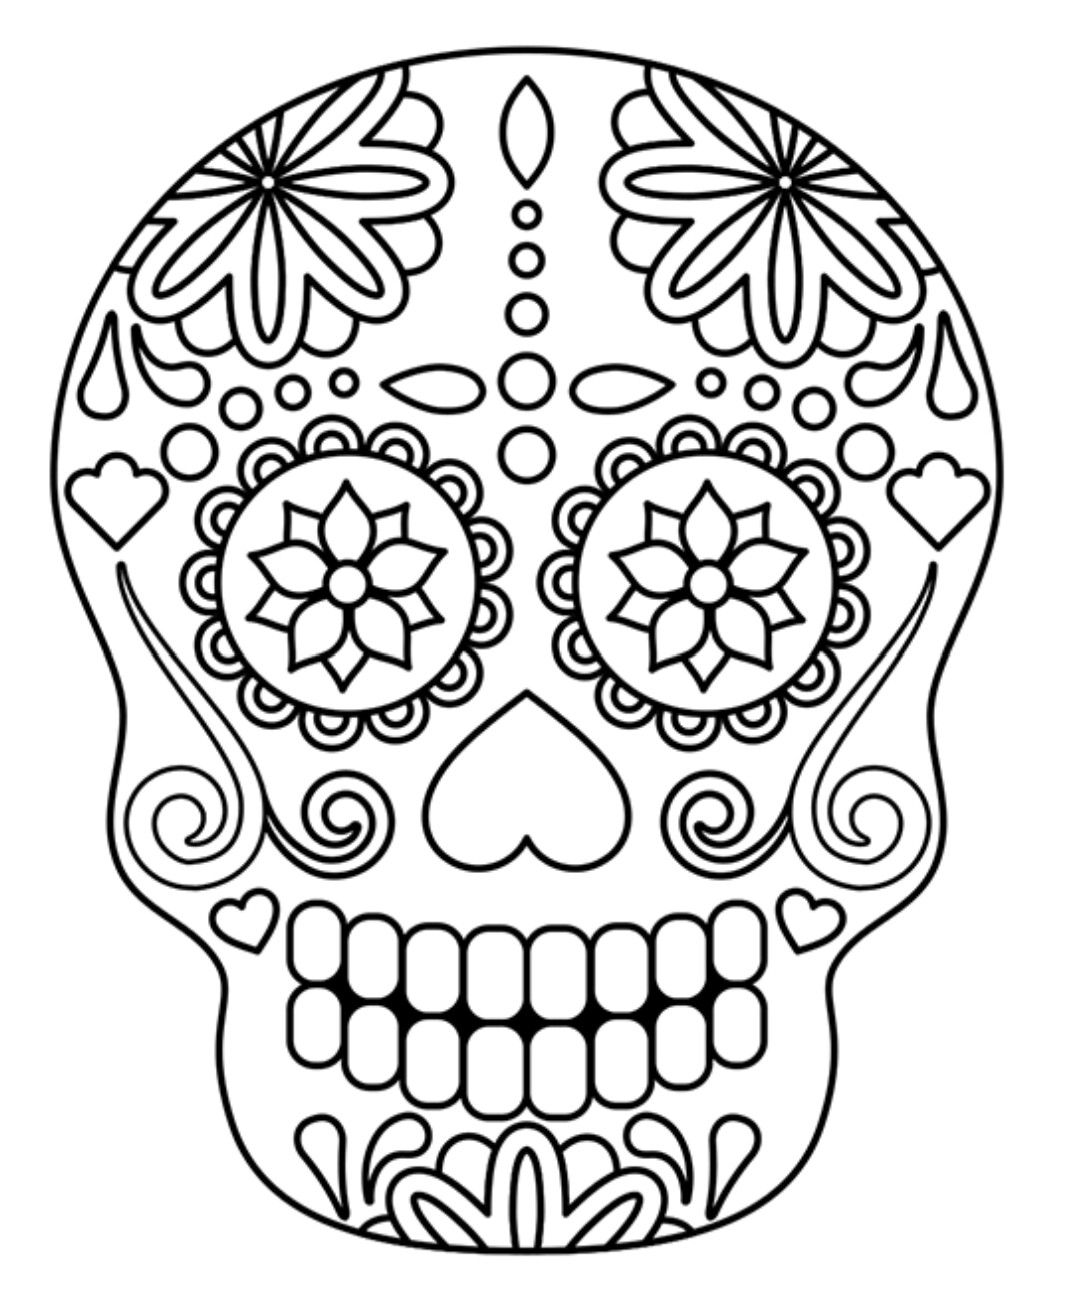 Pin By 1granny On Diy Or Paint Drawing Watercolor Skull Coloring Pages Halloween Art Sugar Skull Art